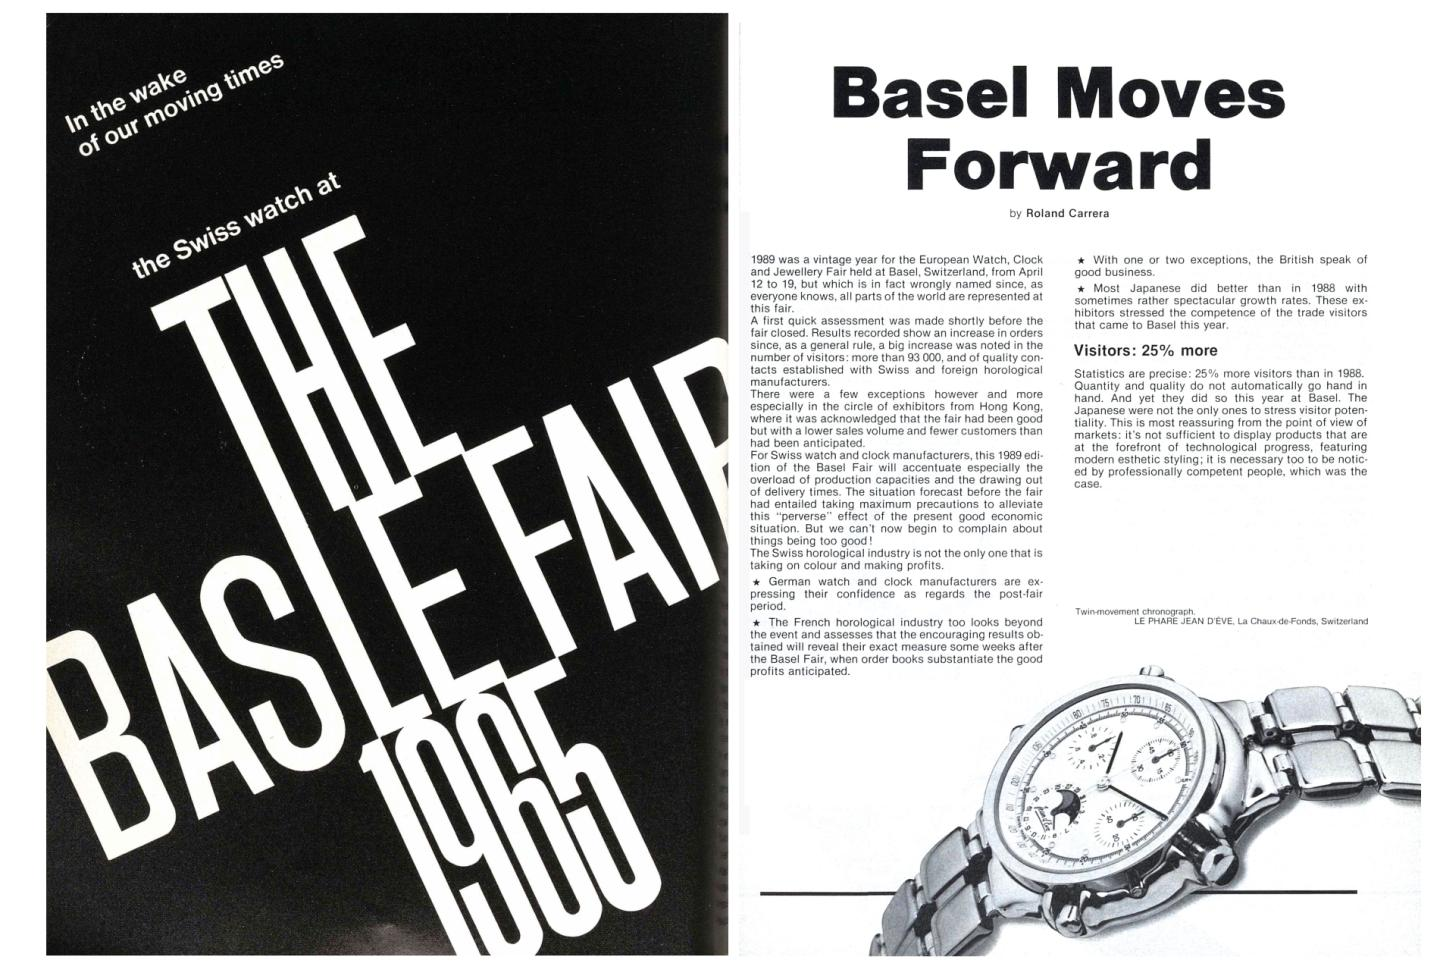 A selection of archive pieces from Europa Star about the Basel fair (our publication has been an exhibitor for over 80 years)